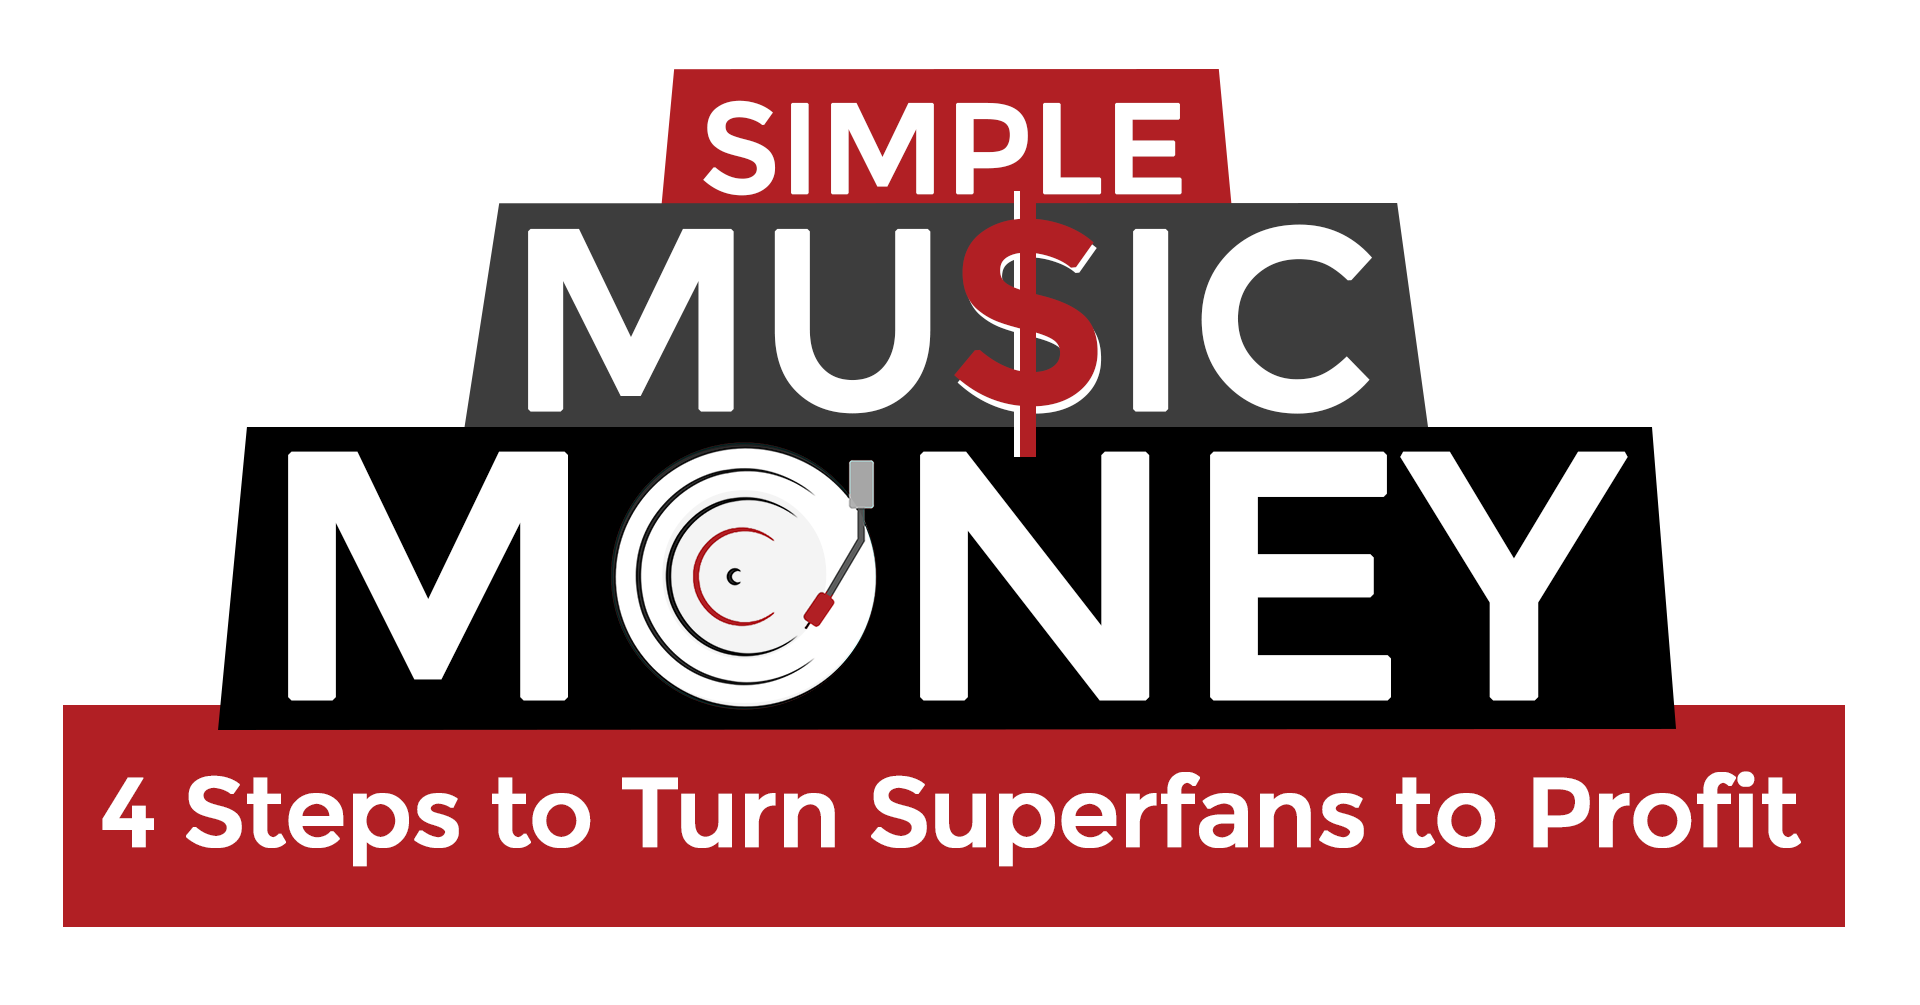 Simple Music Money - 4 Steps to Turn Superfans to Profit